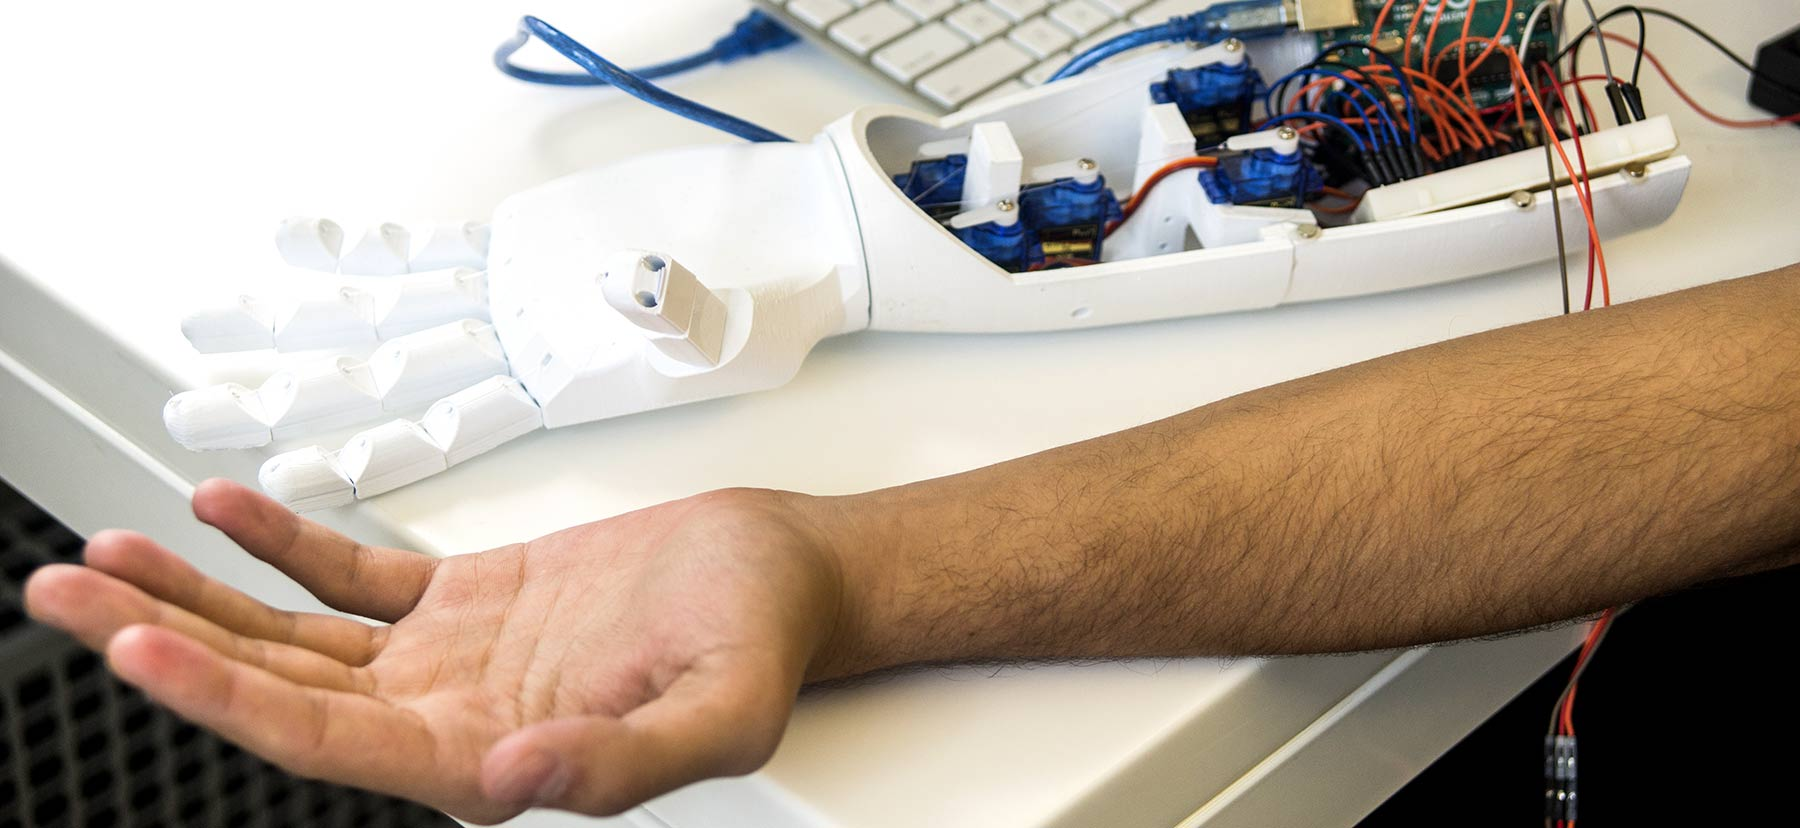 Mohamed's arm stretched out beside the mechanical arm he created, which is opened to expose various wires